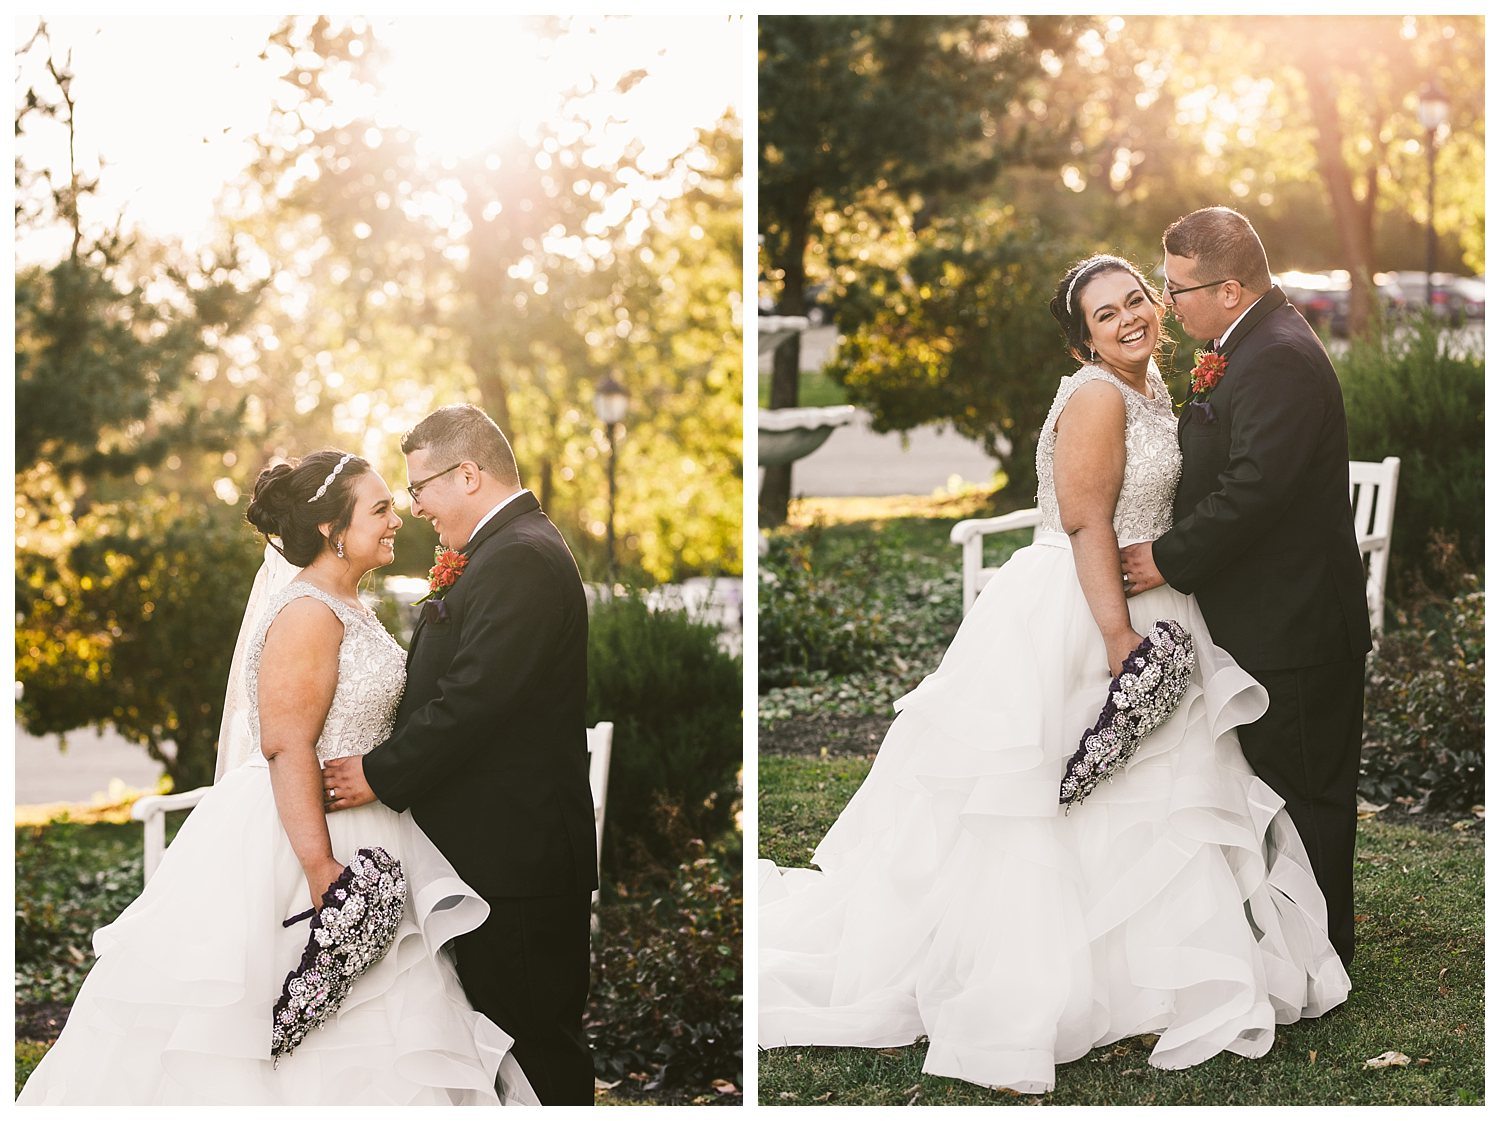 Kelsey_Diane_Photography_Hawthorne_House_Parkville_Kansas_City_Wedding_Veronica_Pat_0054.jpg